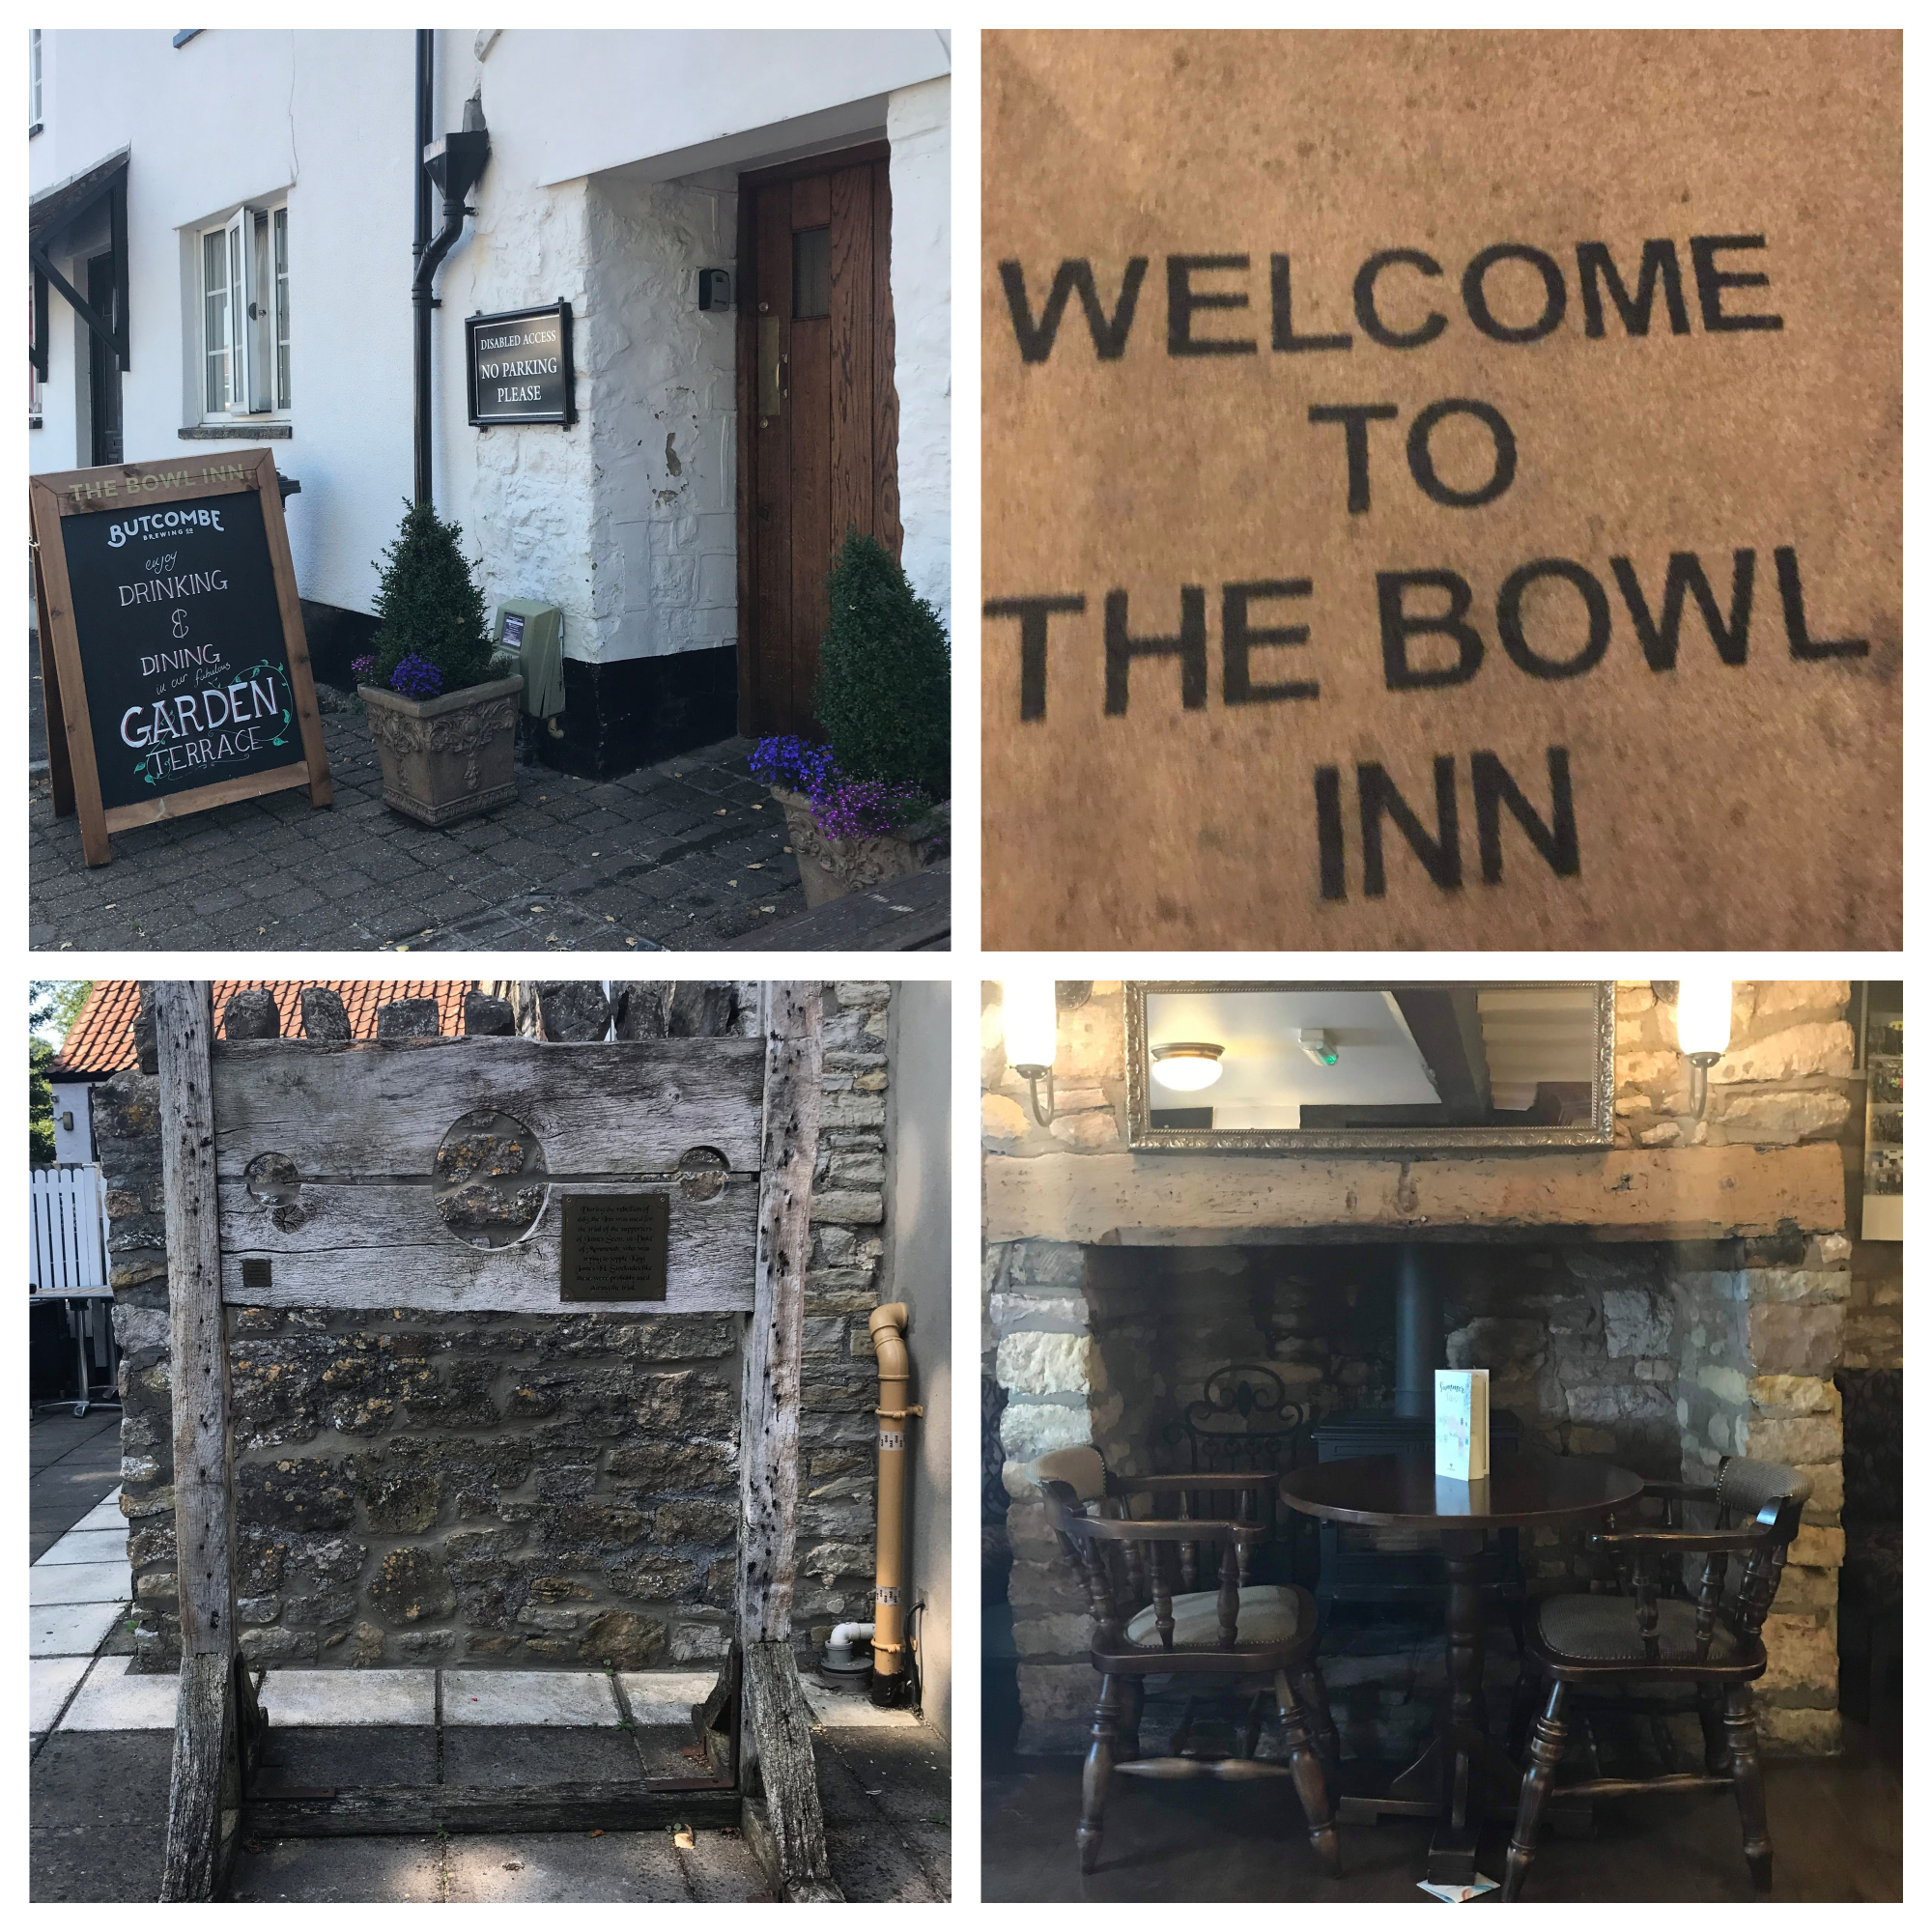 the bowl inn 13